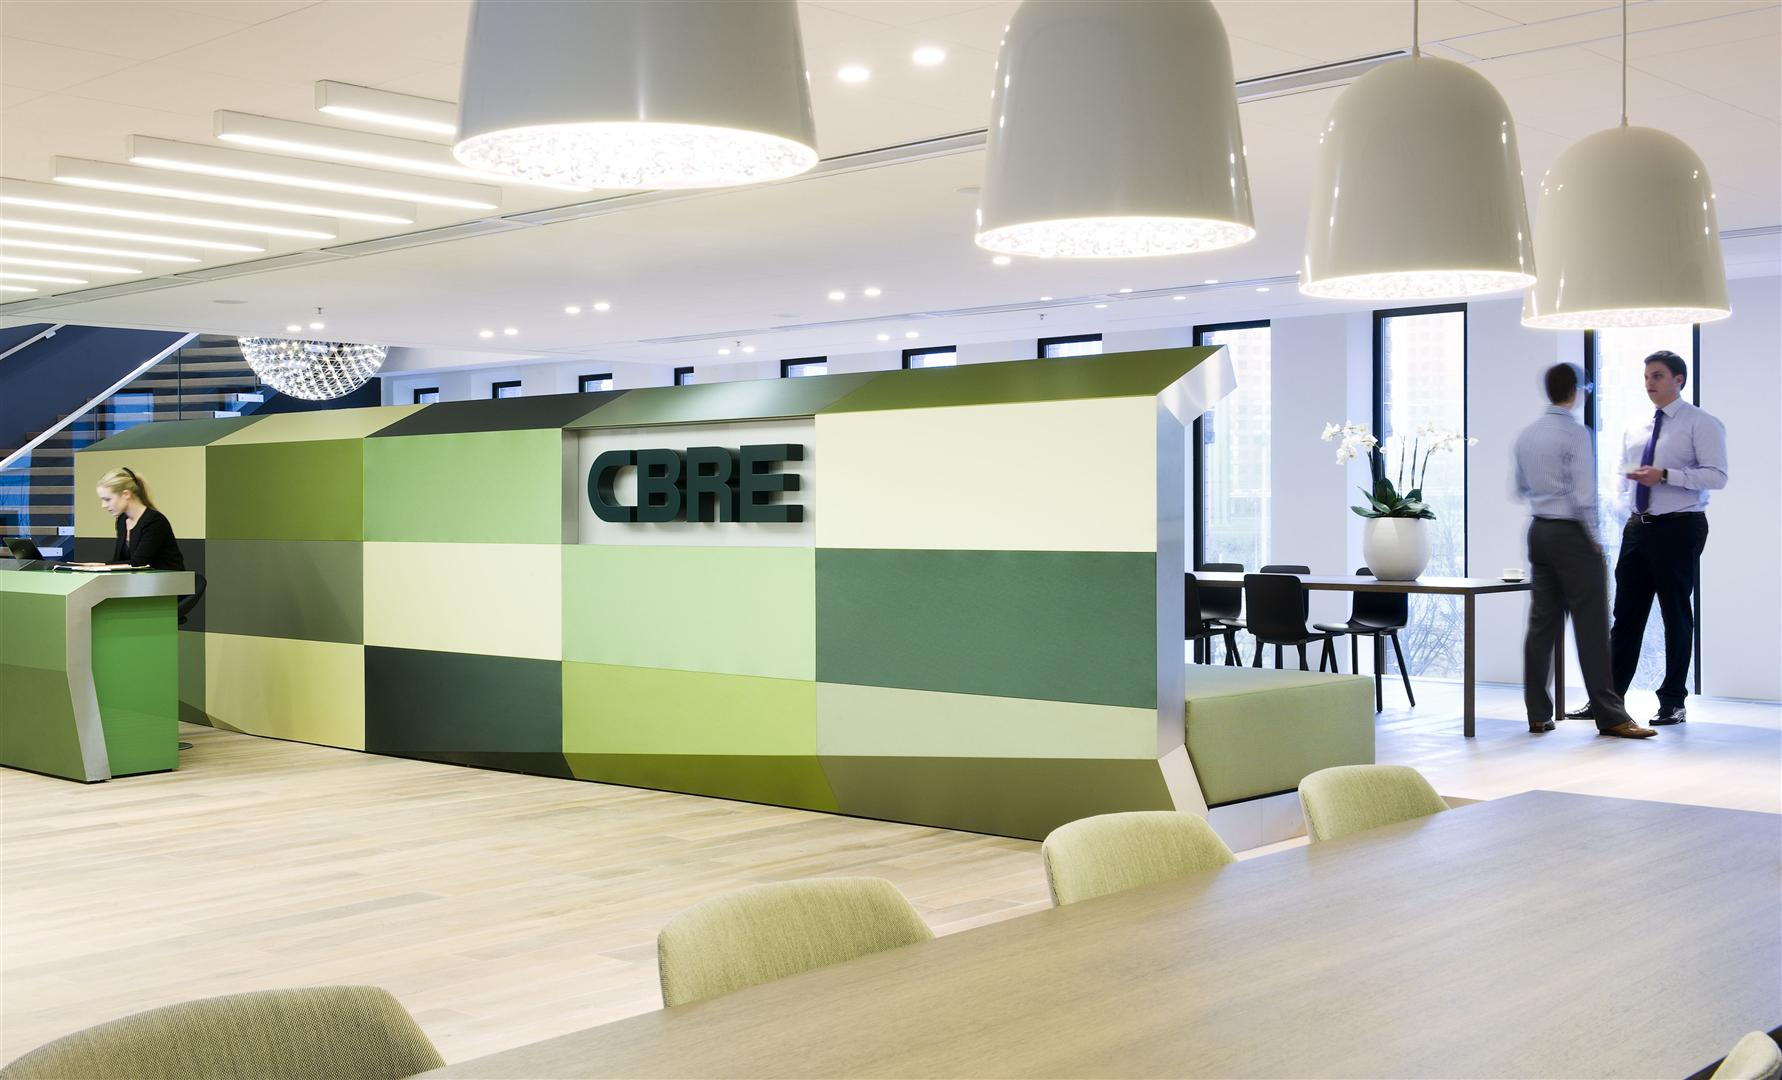 CBRE - Case Study - CBRE HQ The Netherlands - Symphony Offices, Zuidas, Amsterdam - Interior 04